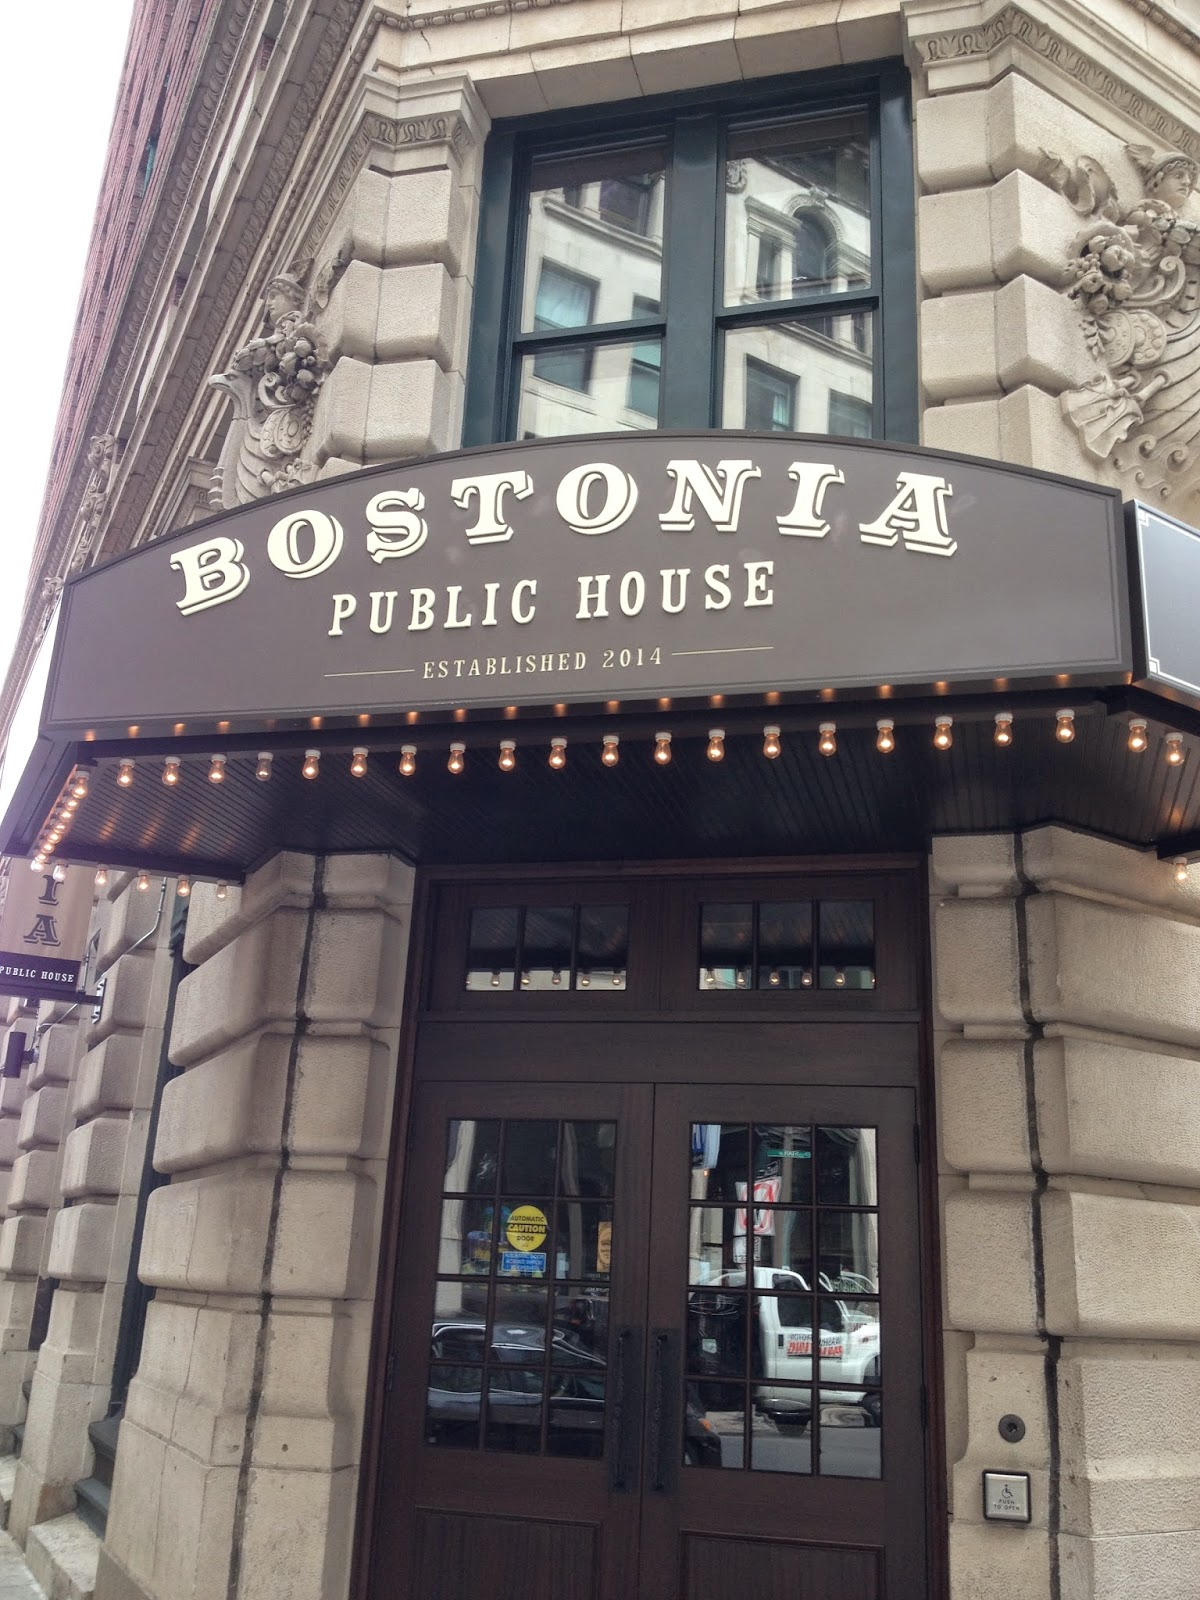 Bostonia Public House Boston